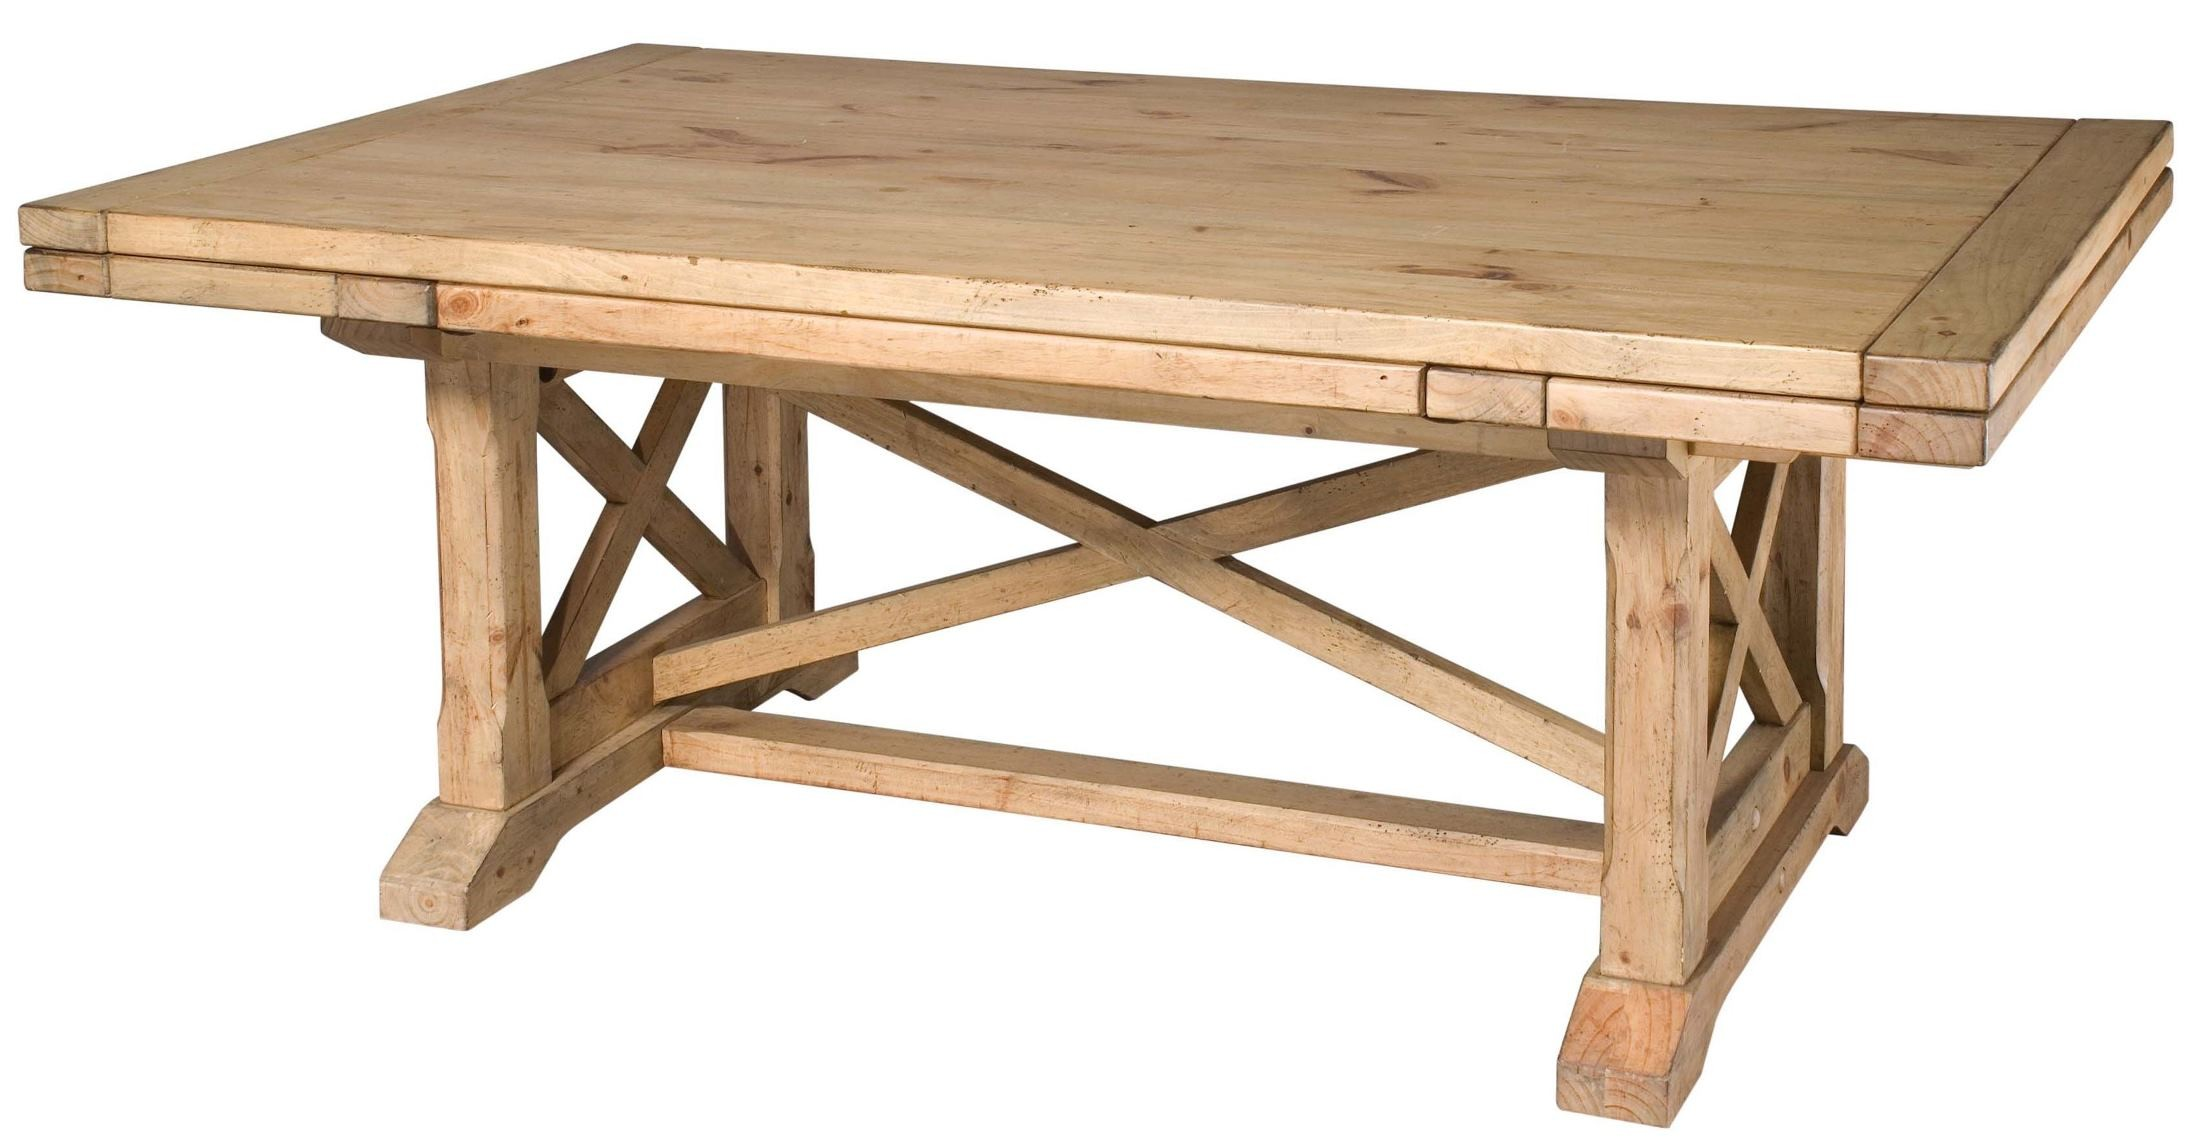 Homecoming Vintage Pine Refectory Extendable Trestle Dining Table From Kincai